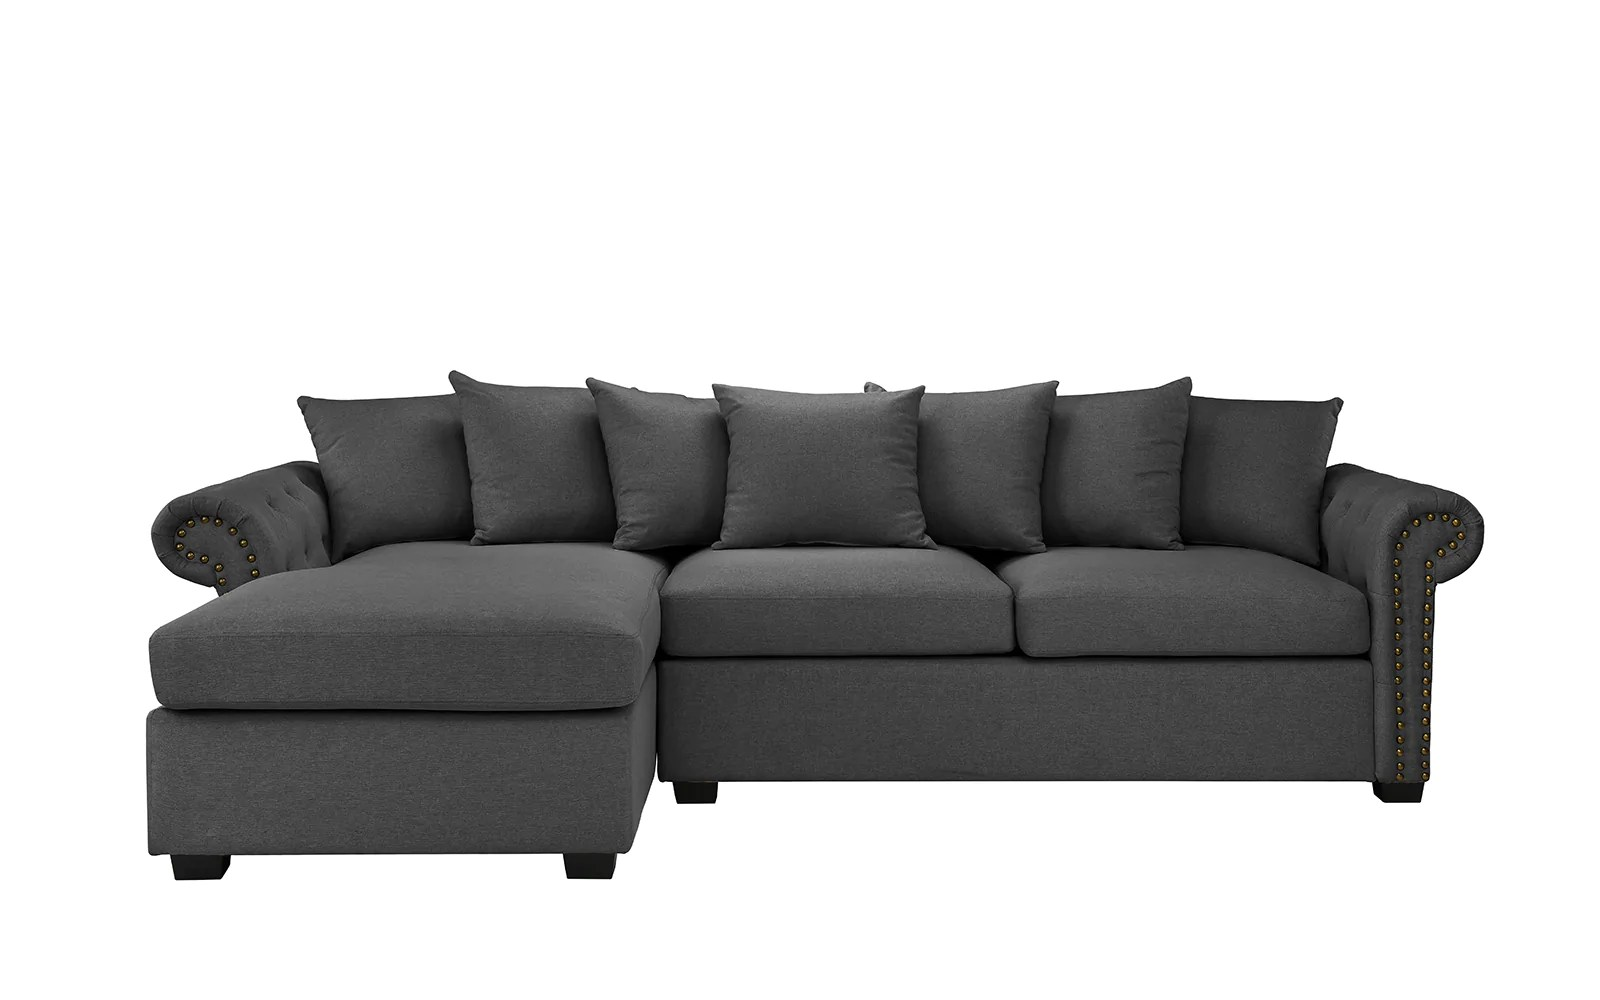 L Shaped Sofa Victorian Melina Classic L Shape Sectional Sofa Sofamania